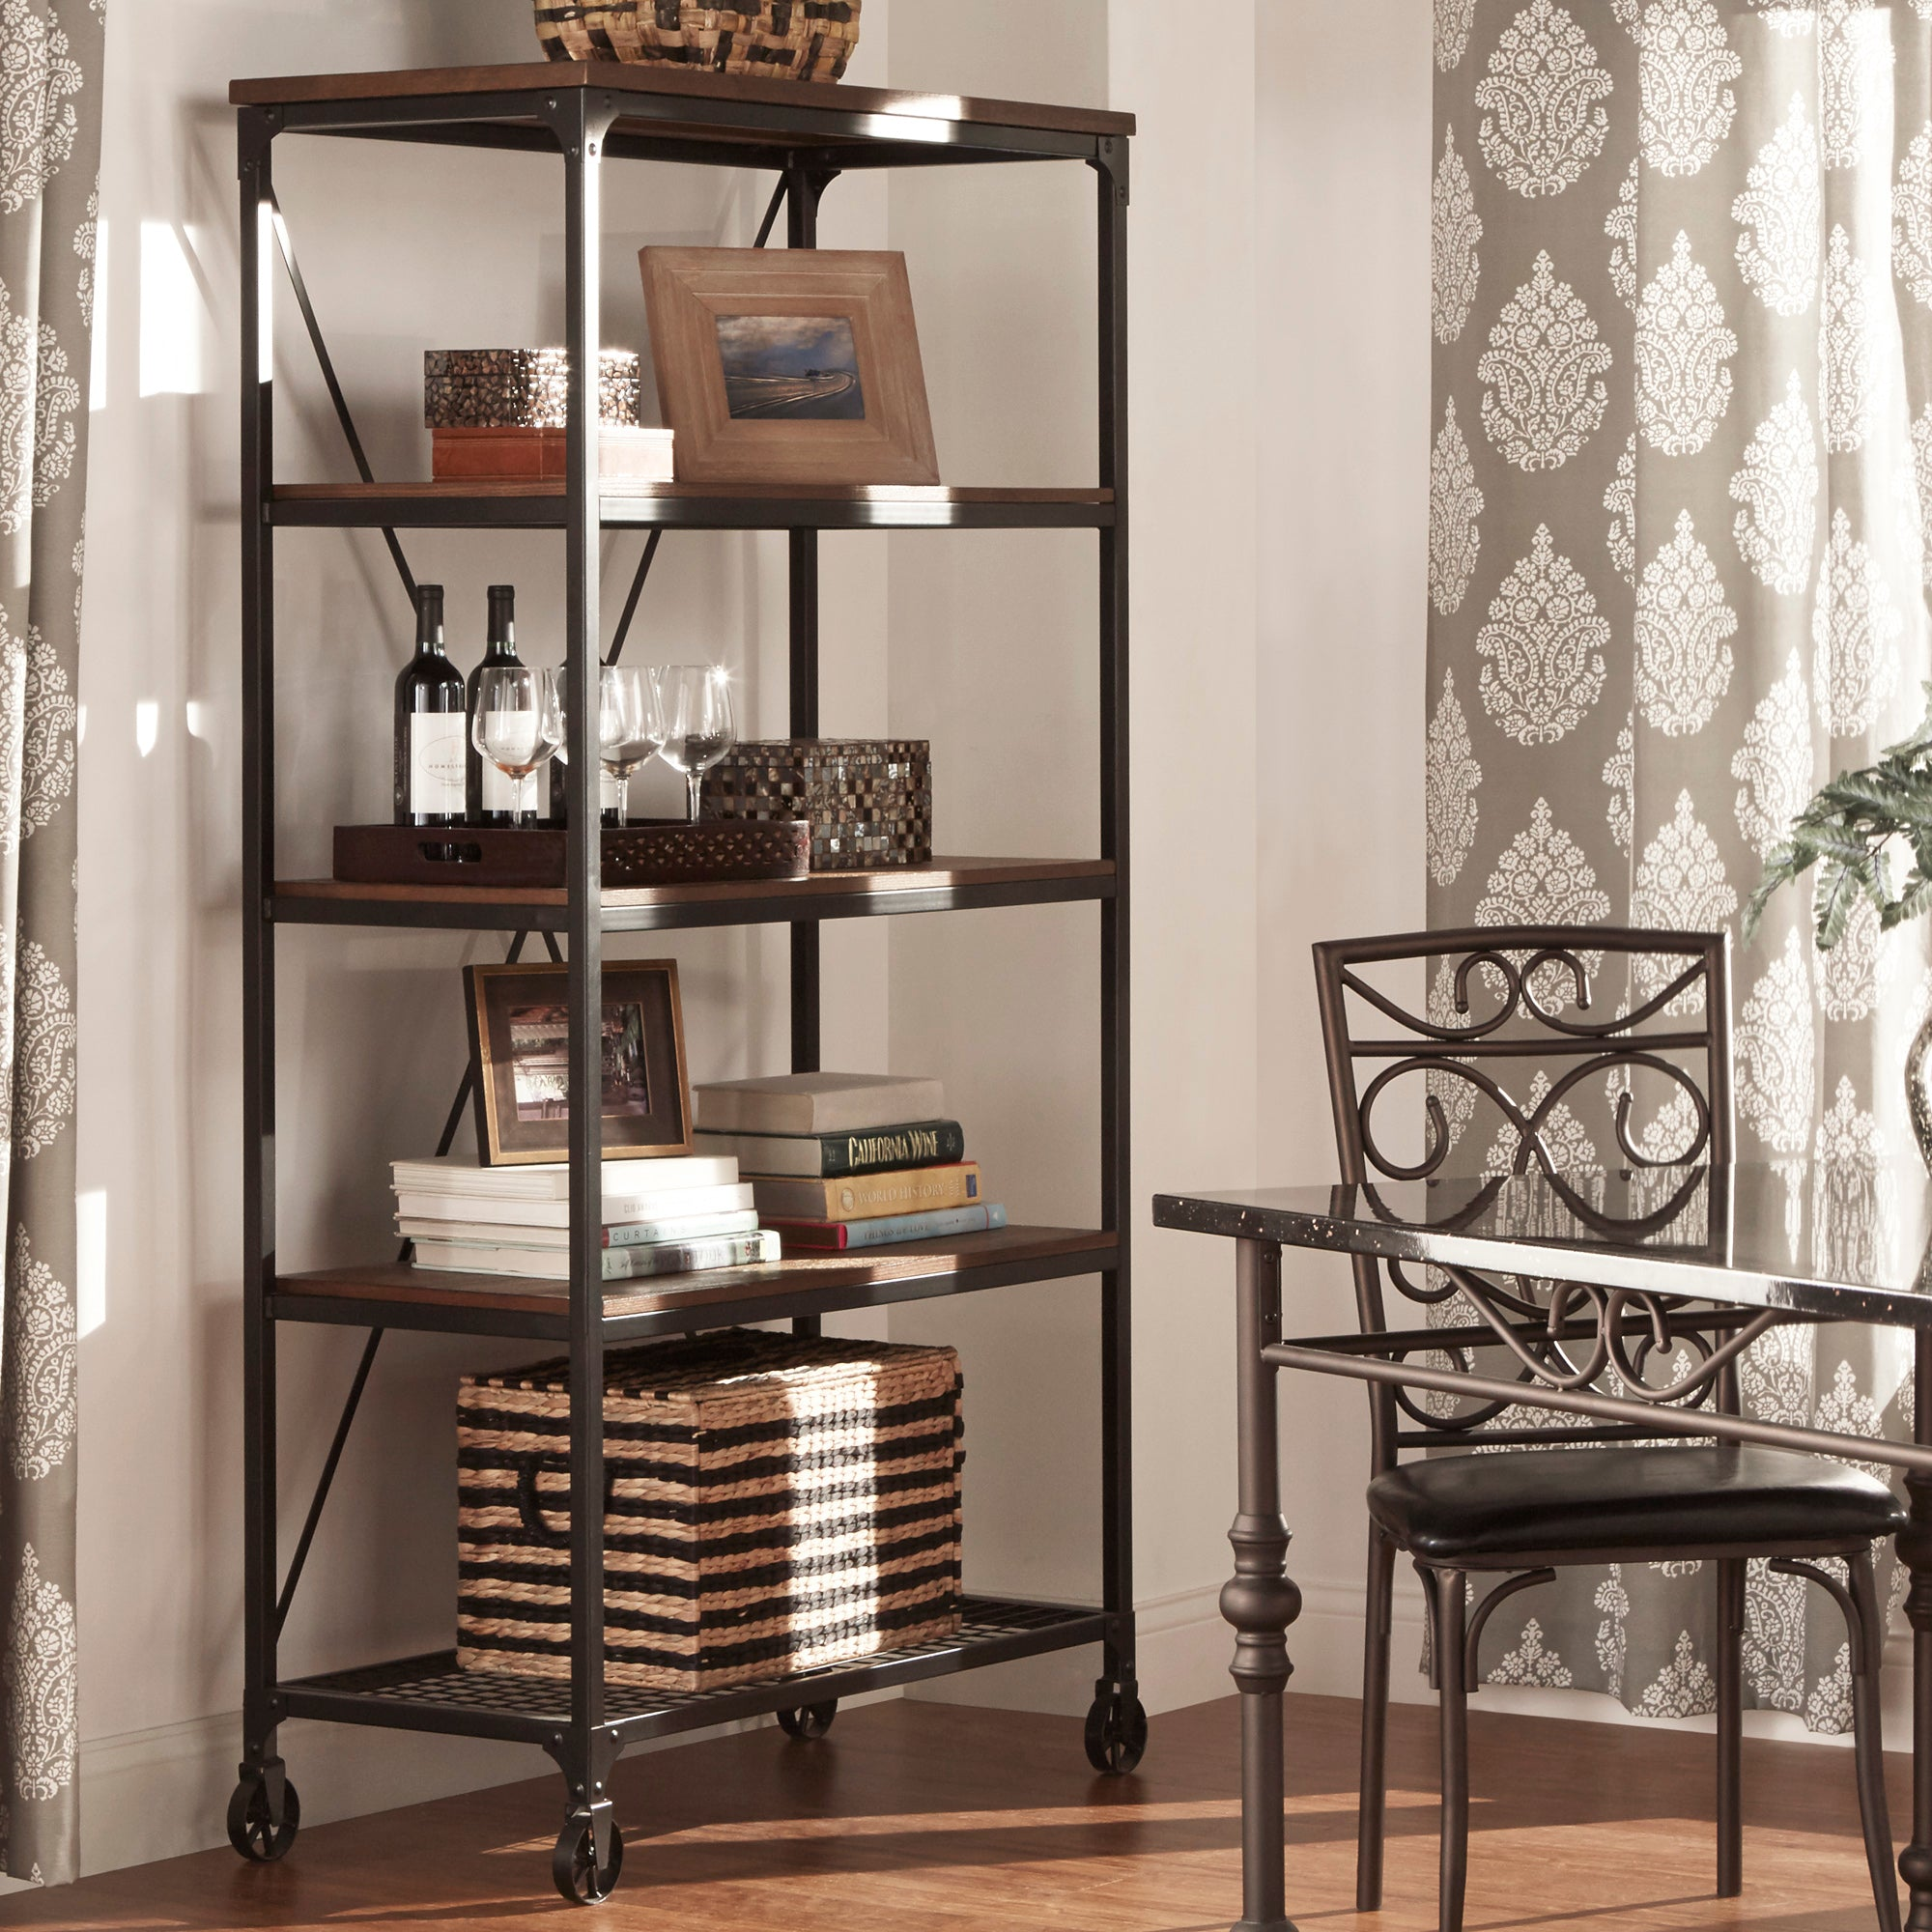 Industrial Modern Rustic 40-inch Bookcase - 40-Inch